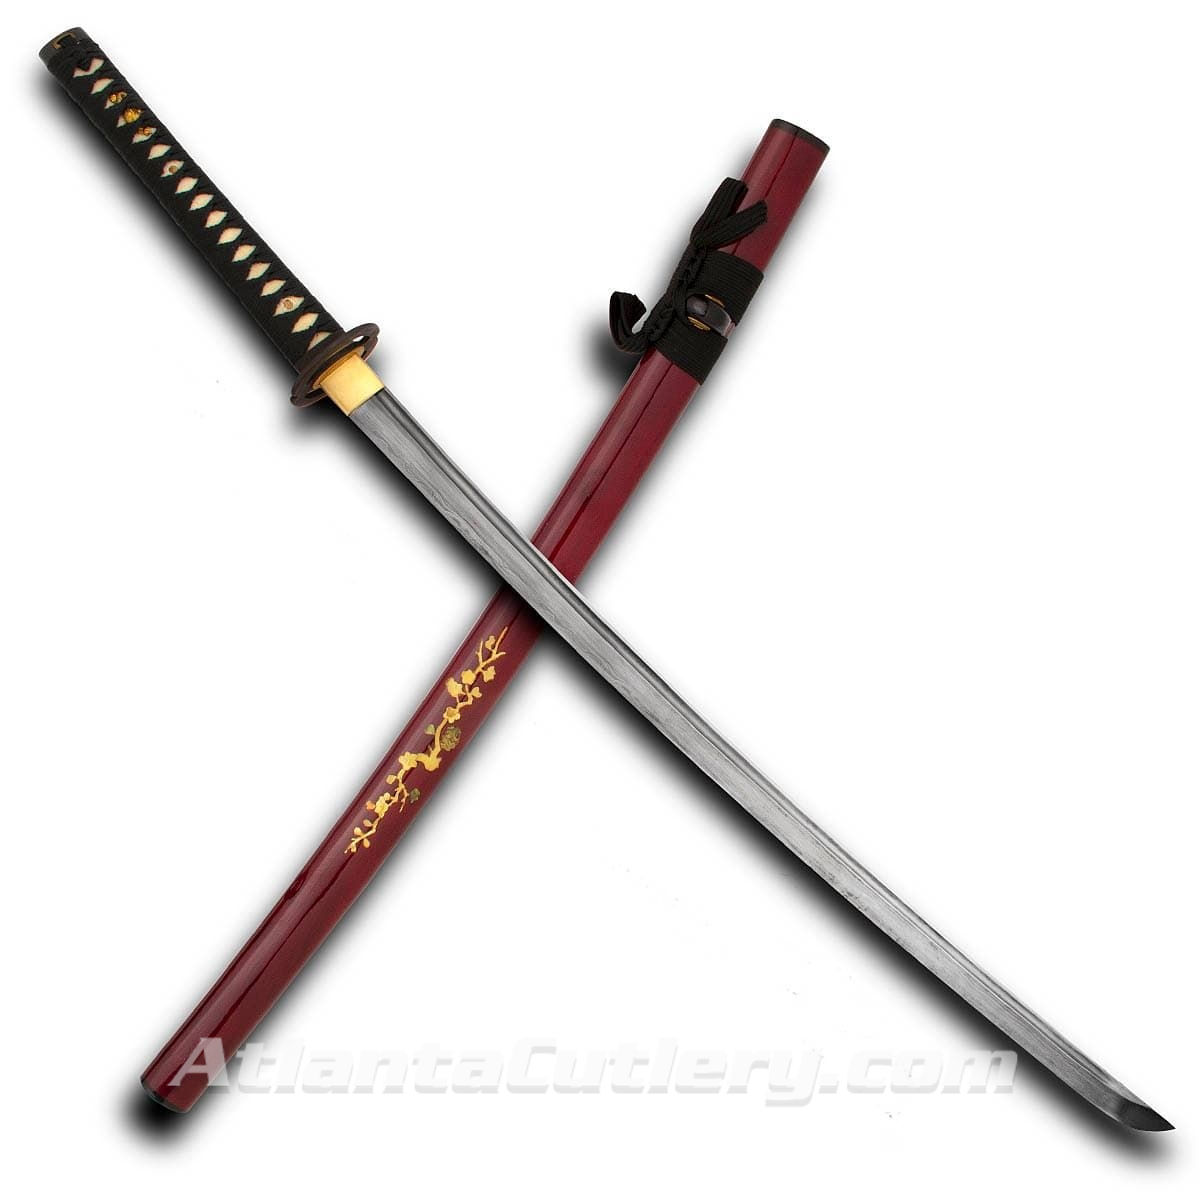 Hand Made Blossom Katana with Damascus Blade and Blossom Motif on Cherry Wood Saya